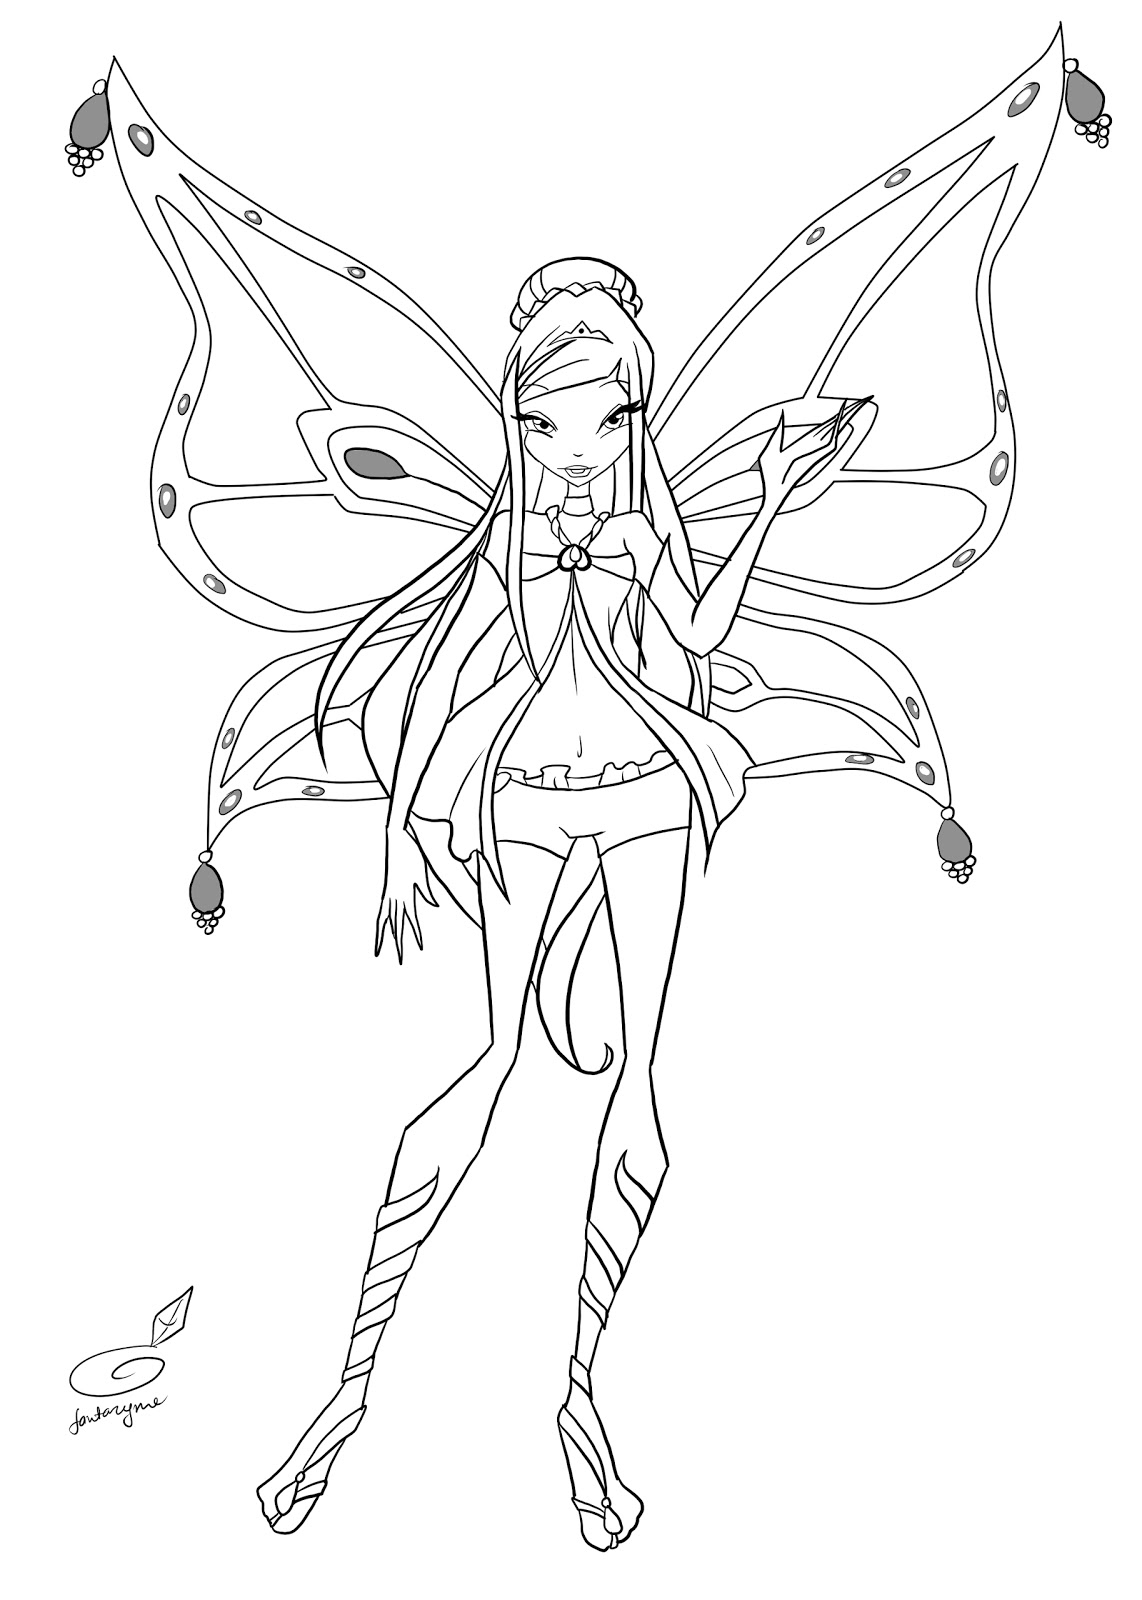 winx believix coloring pages | Winx Club All: Colorear: Roxy enchantix (fan made)